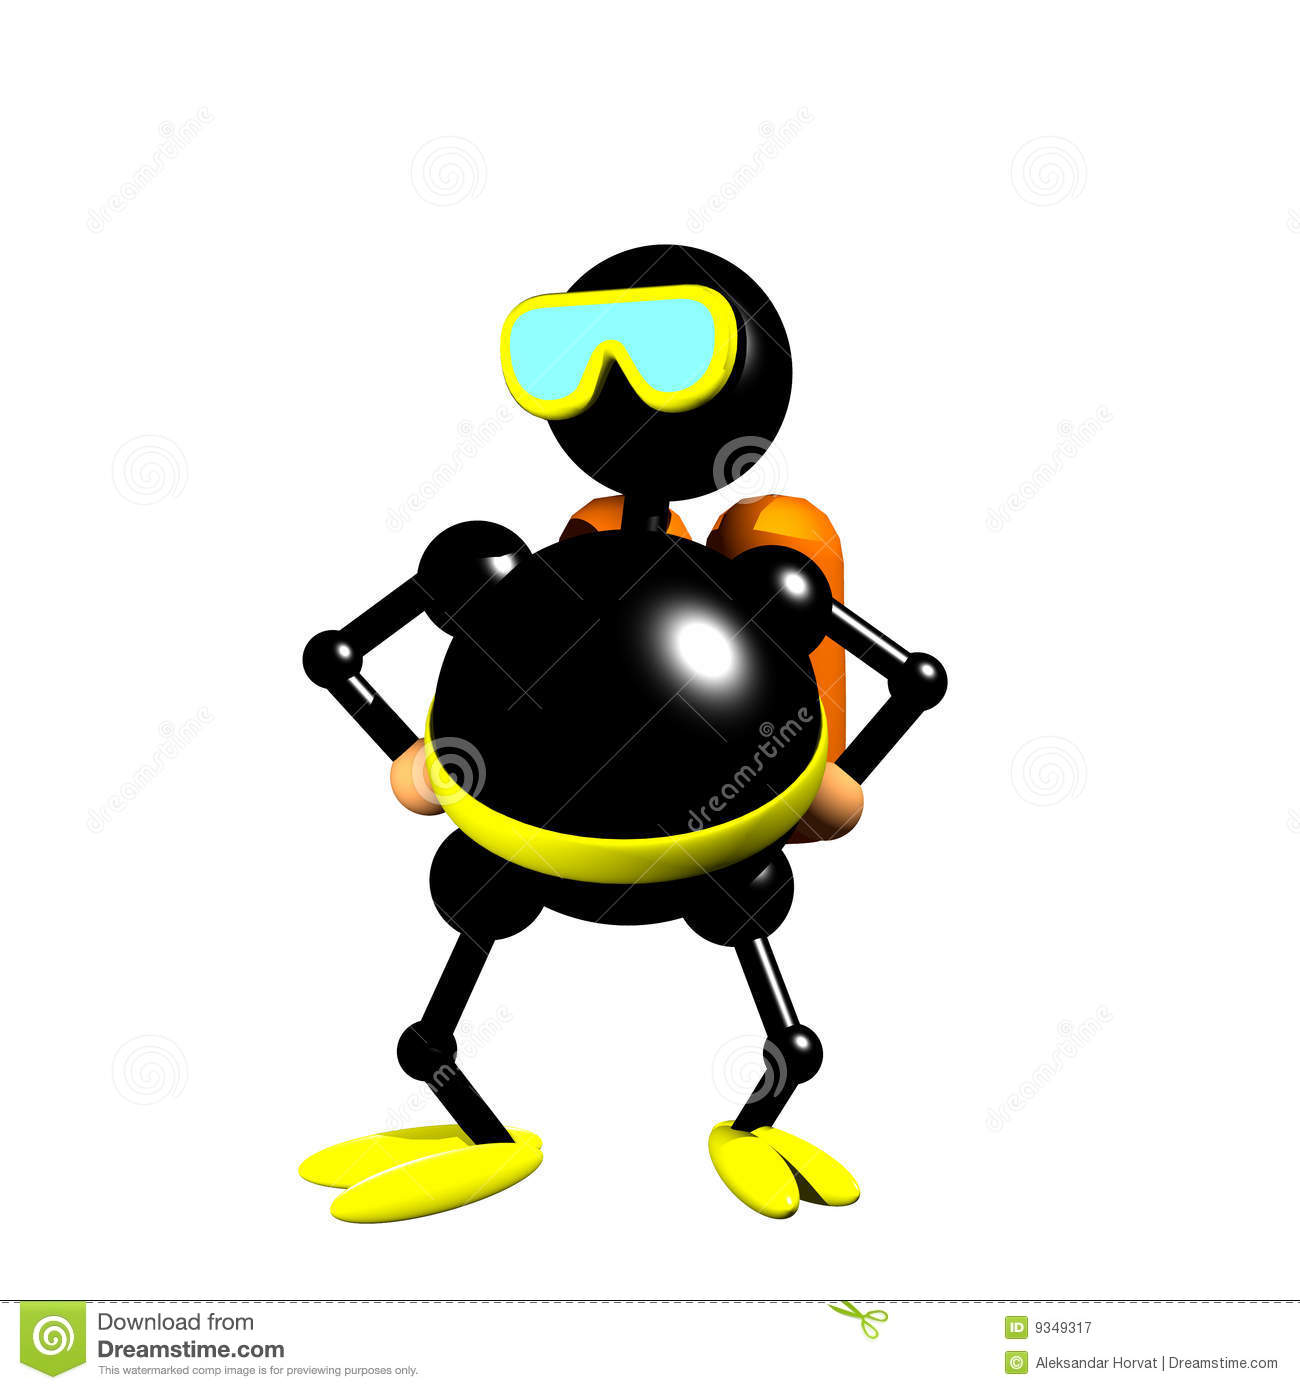 Scuba diver figurine clipart, computer generated 3D icon of man in ...